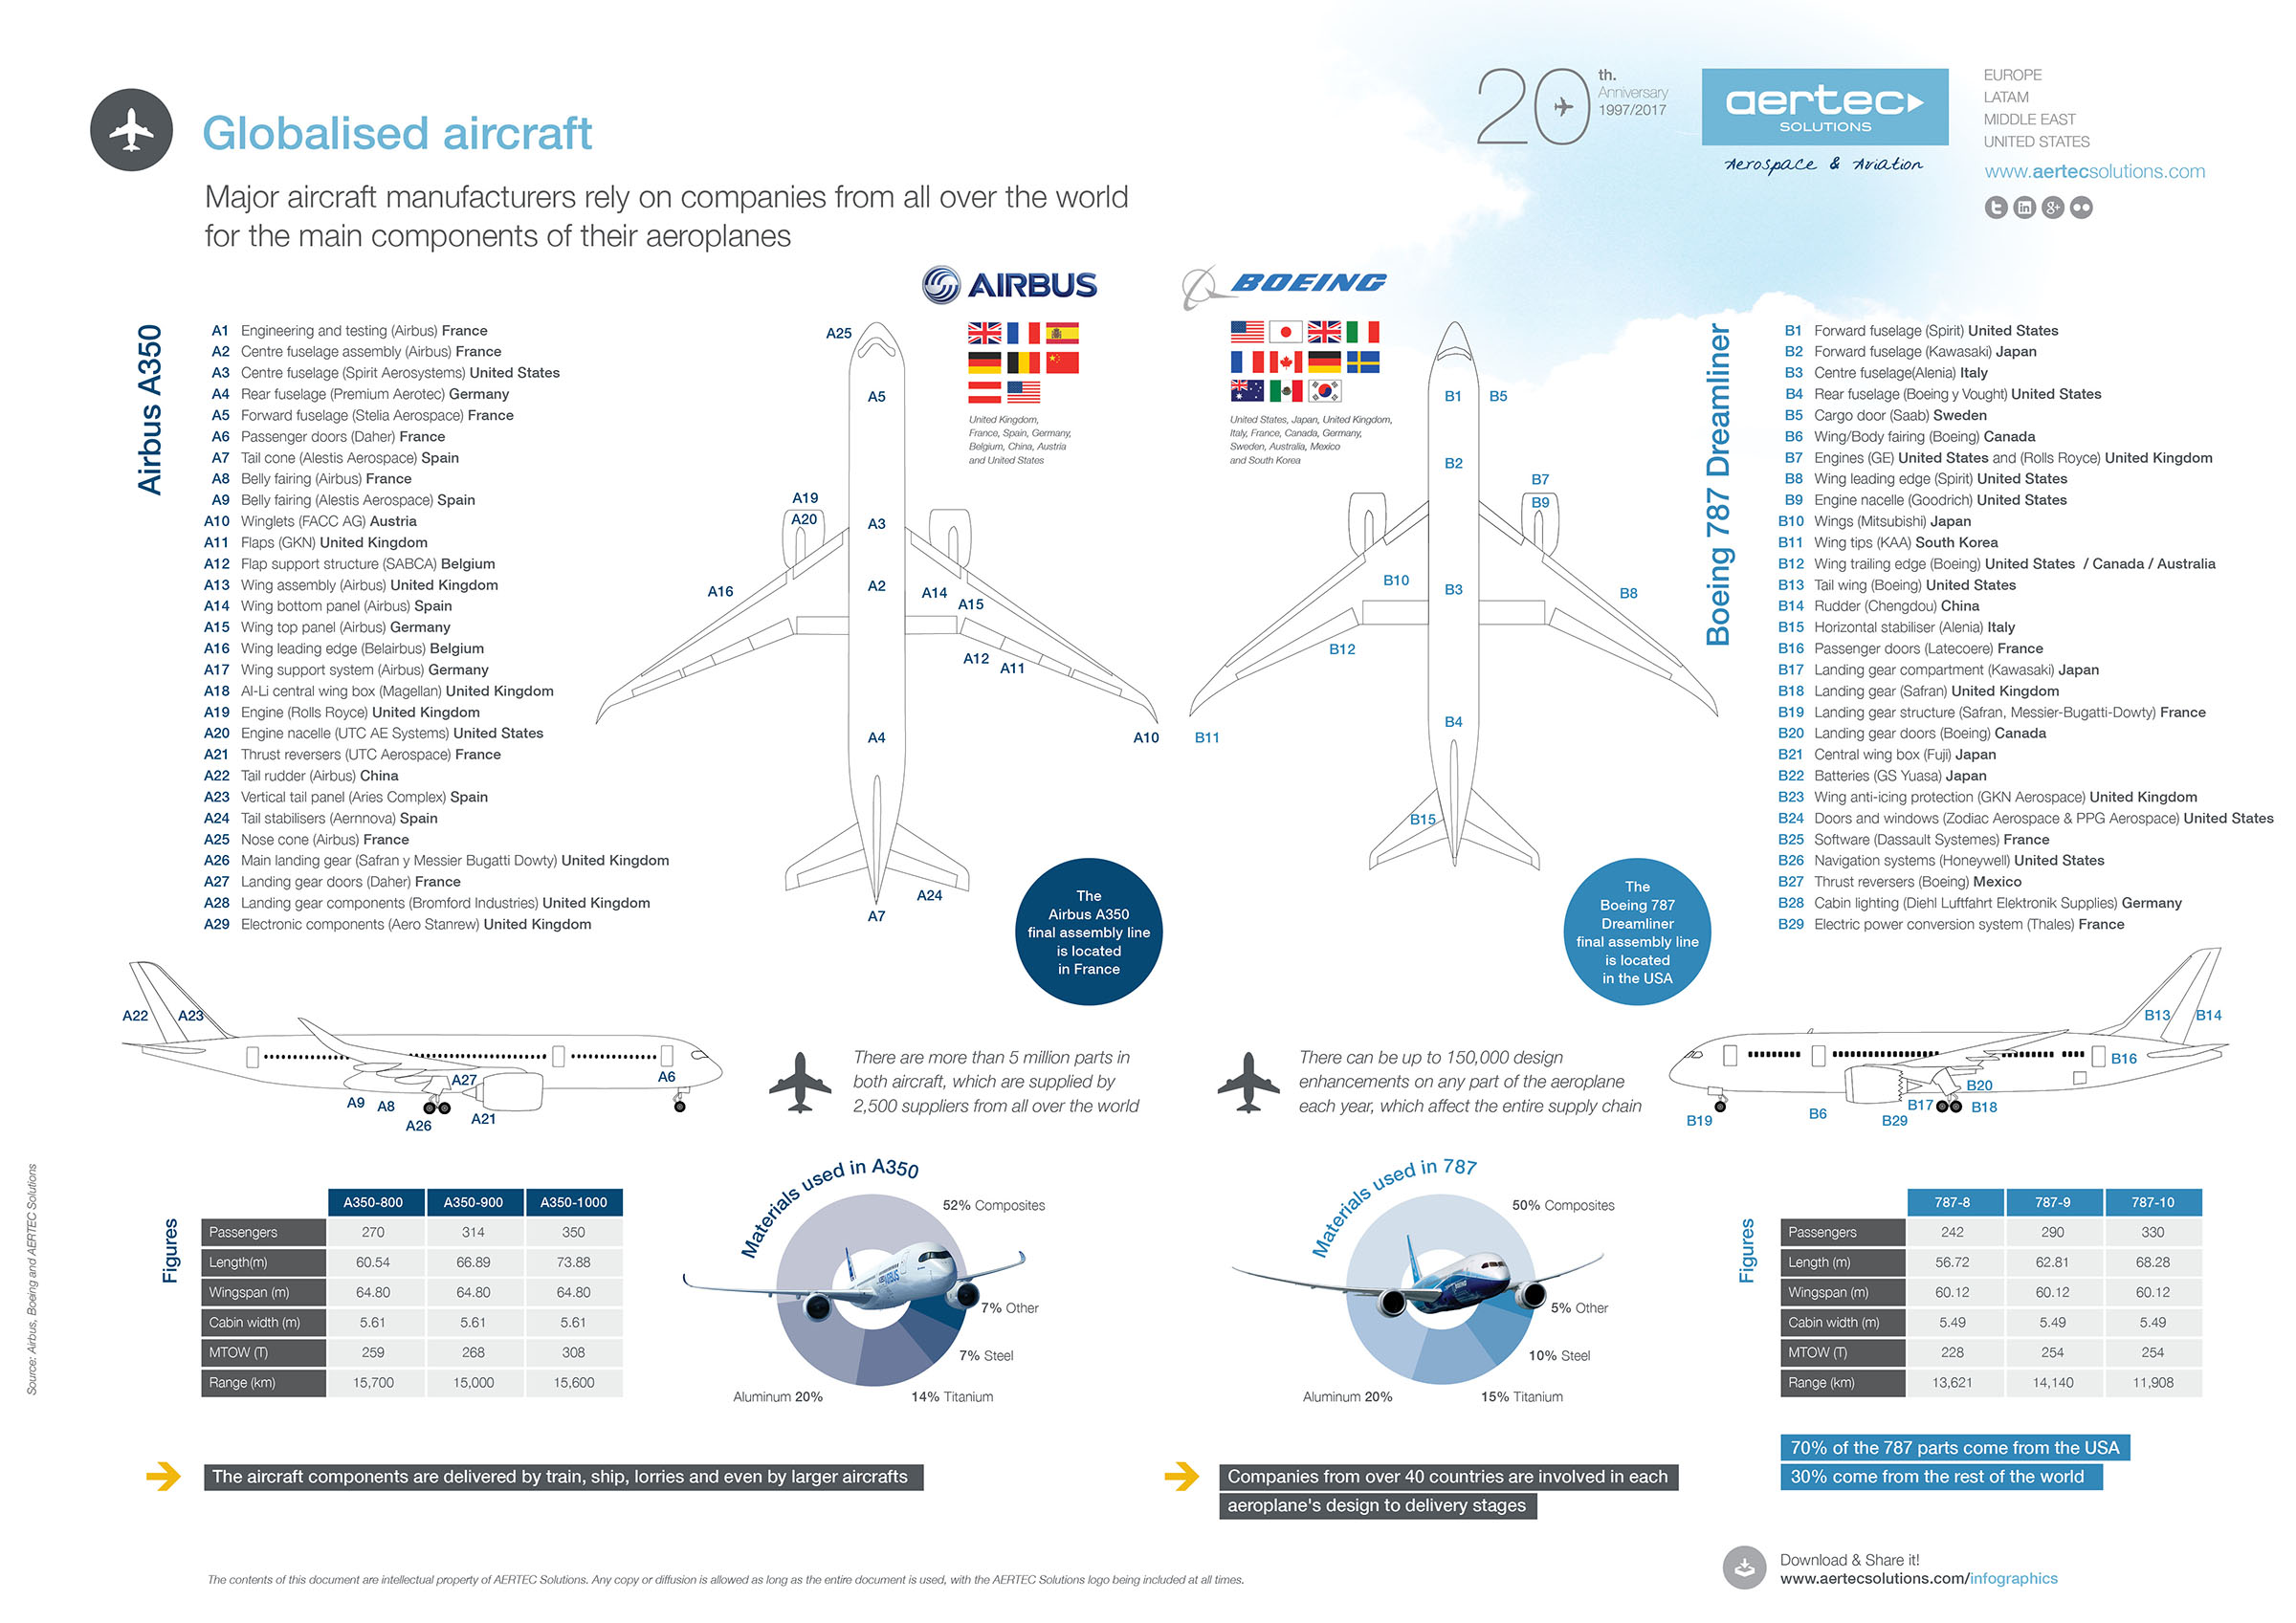 Infographic The Globalisation Of Aircraft Aertec Solutions Plane Wing Diagram Globalised Pdf